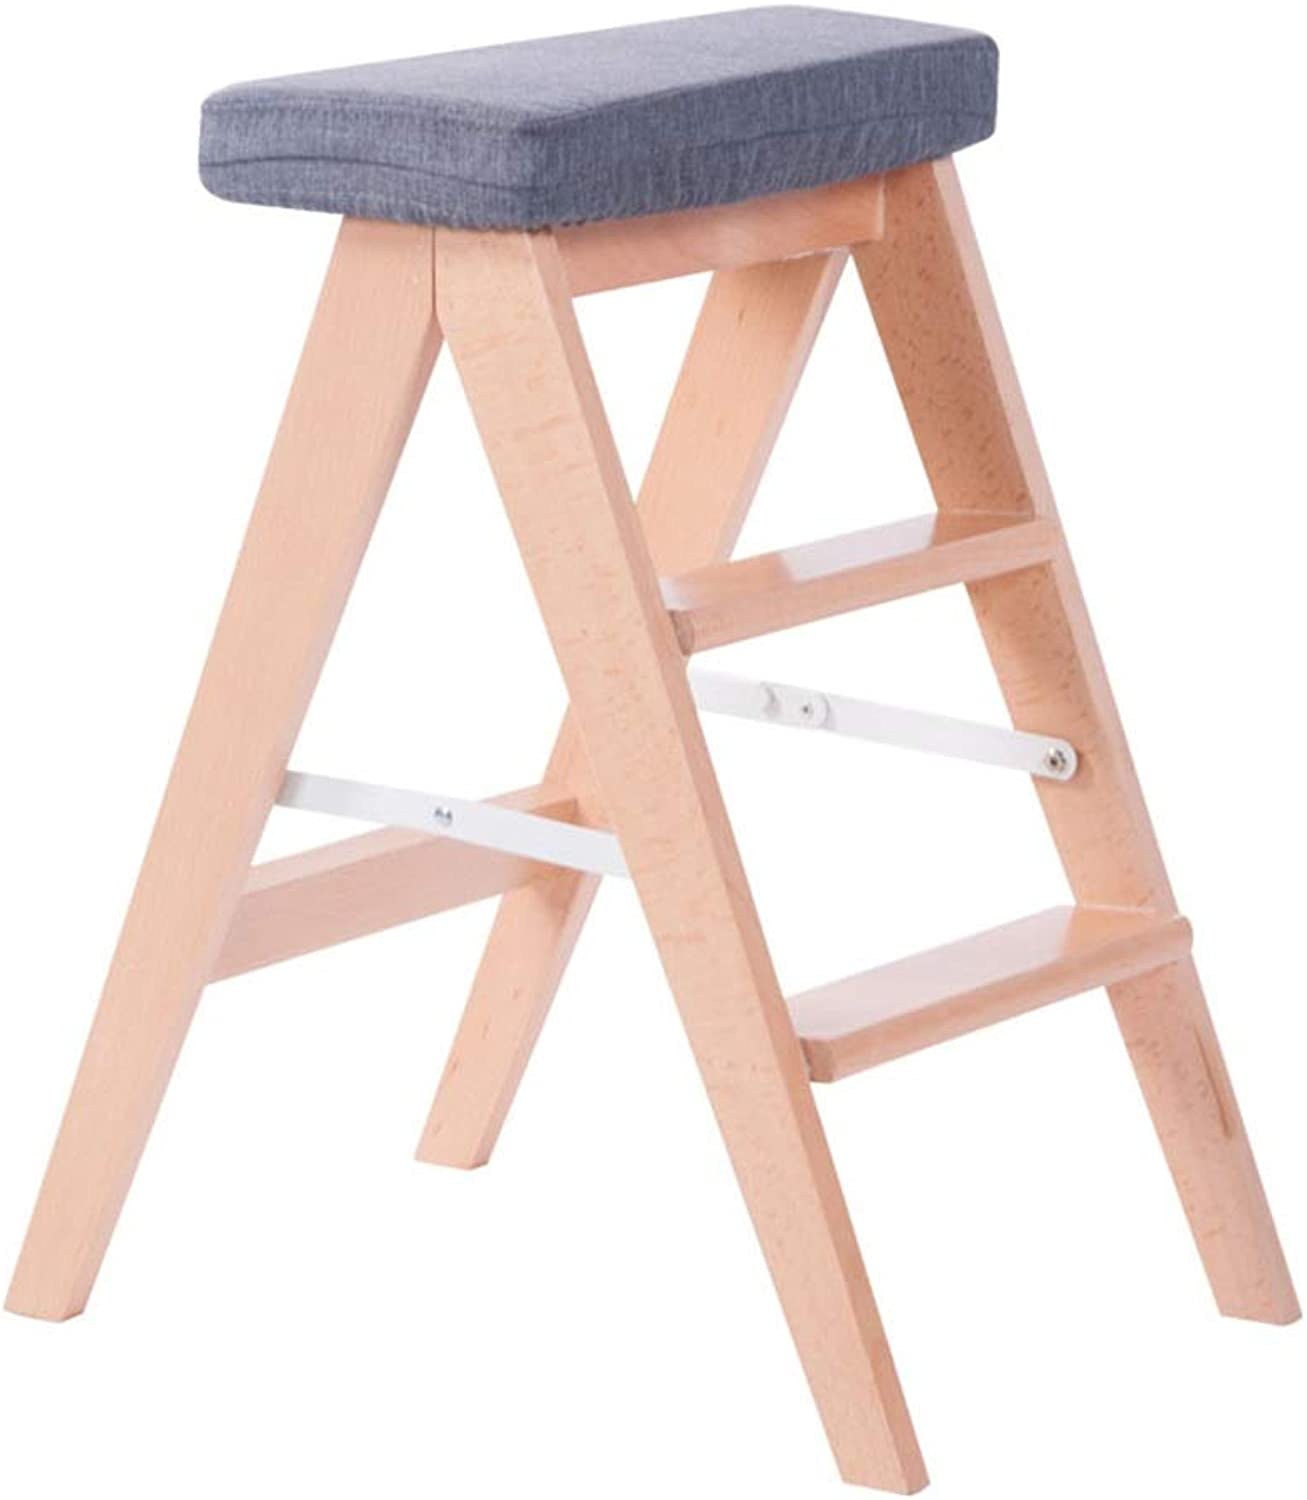 Kitchen Helper Stool - Folding Step Stool for Little Kids, Toddler Safety Cooking Tower Learning Furniture Foldable Stool Escalera Plegable Madera